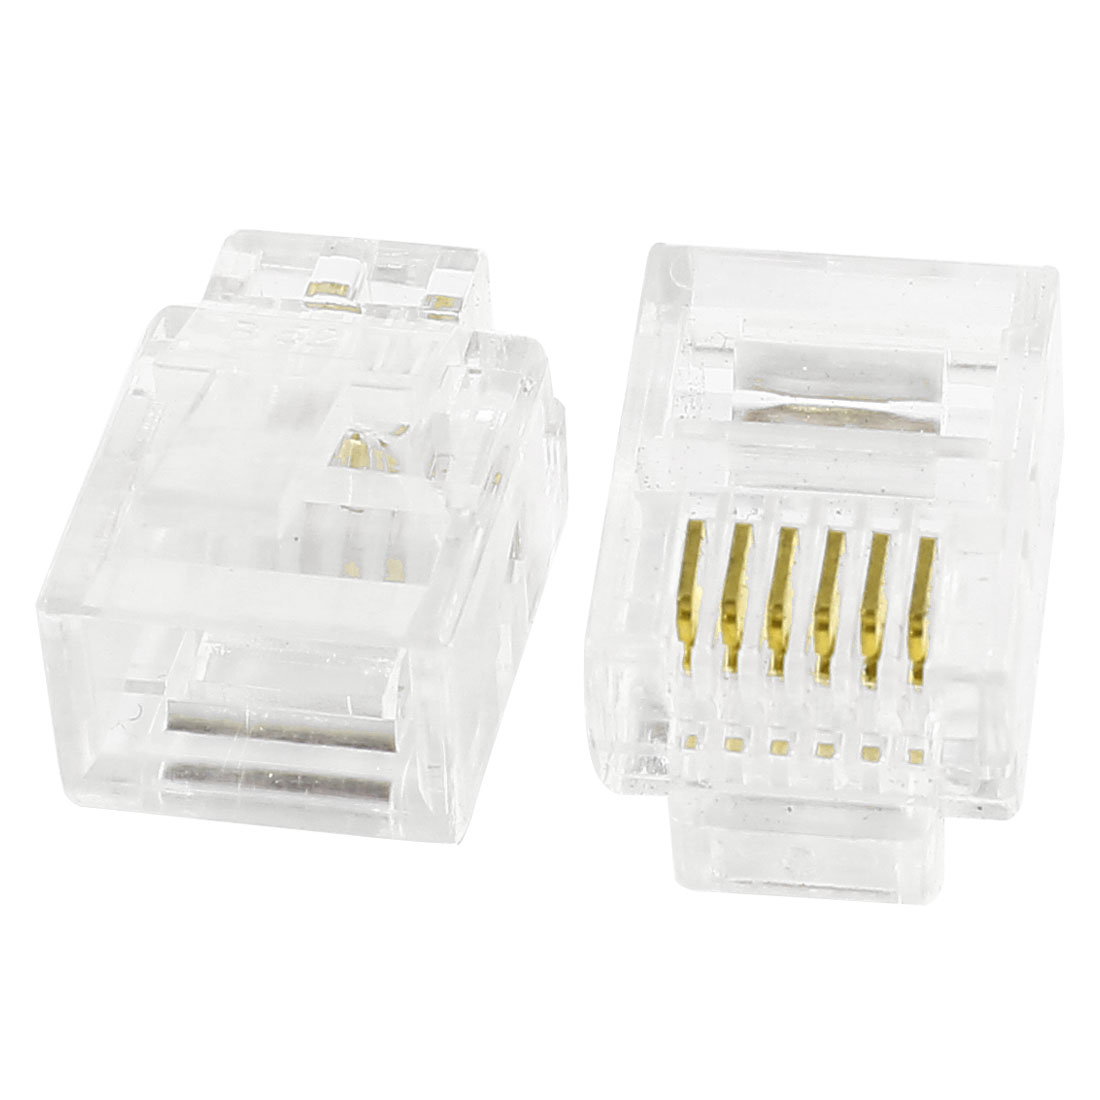 2 Pcs 6P6C RJ11 Jack Connector Clear for Telephone Cable Wire